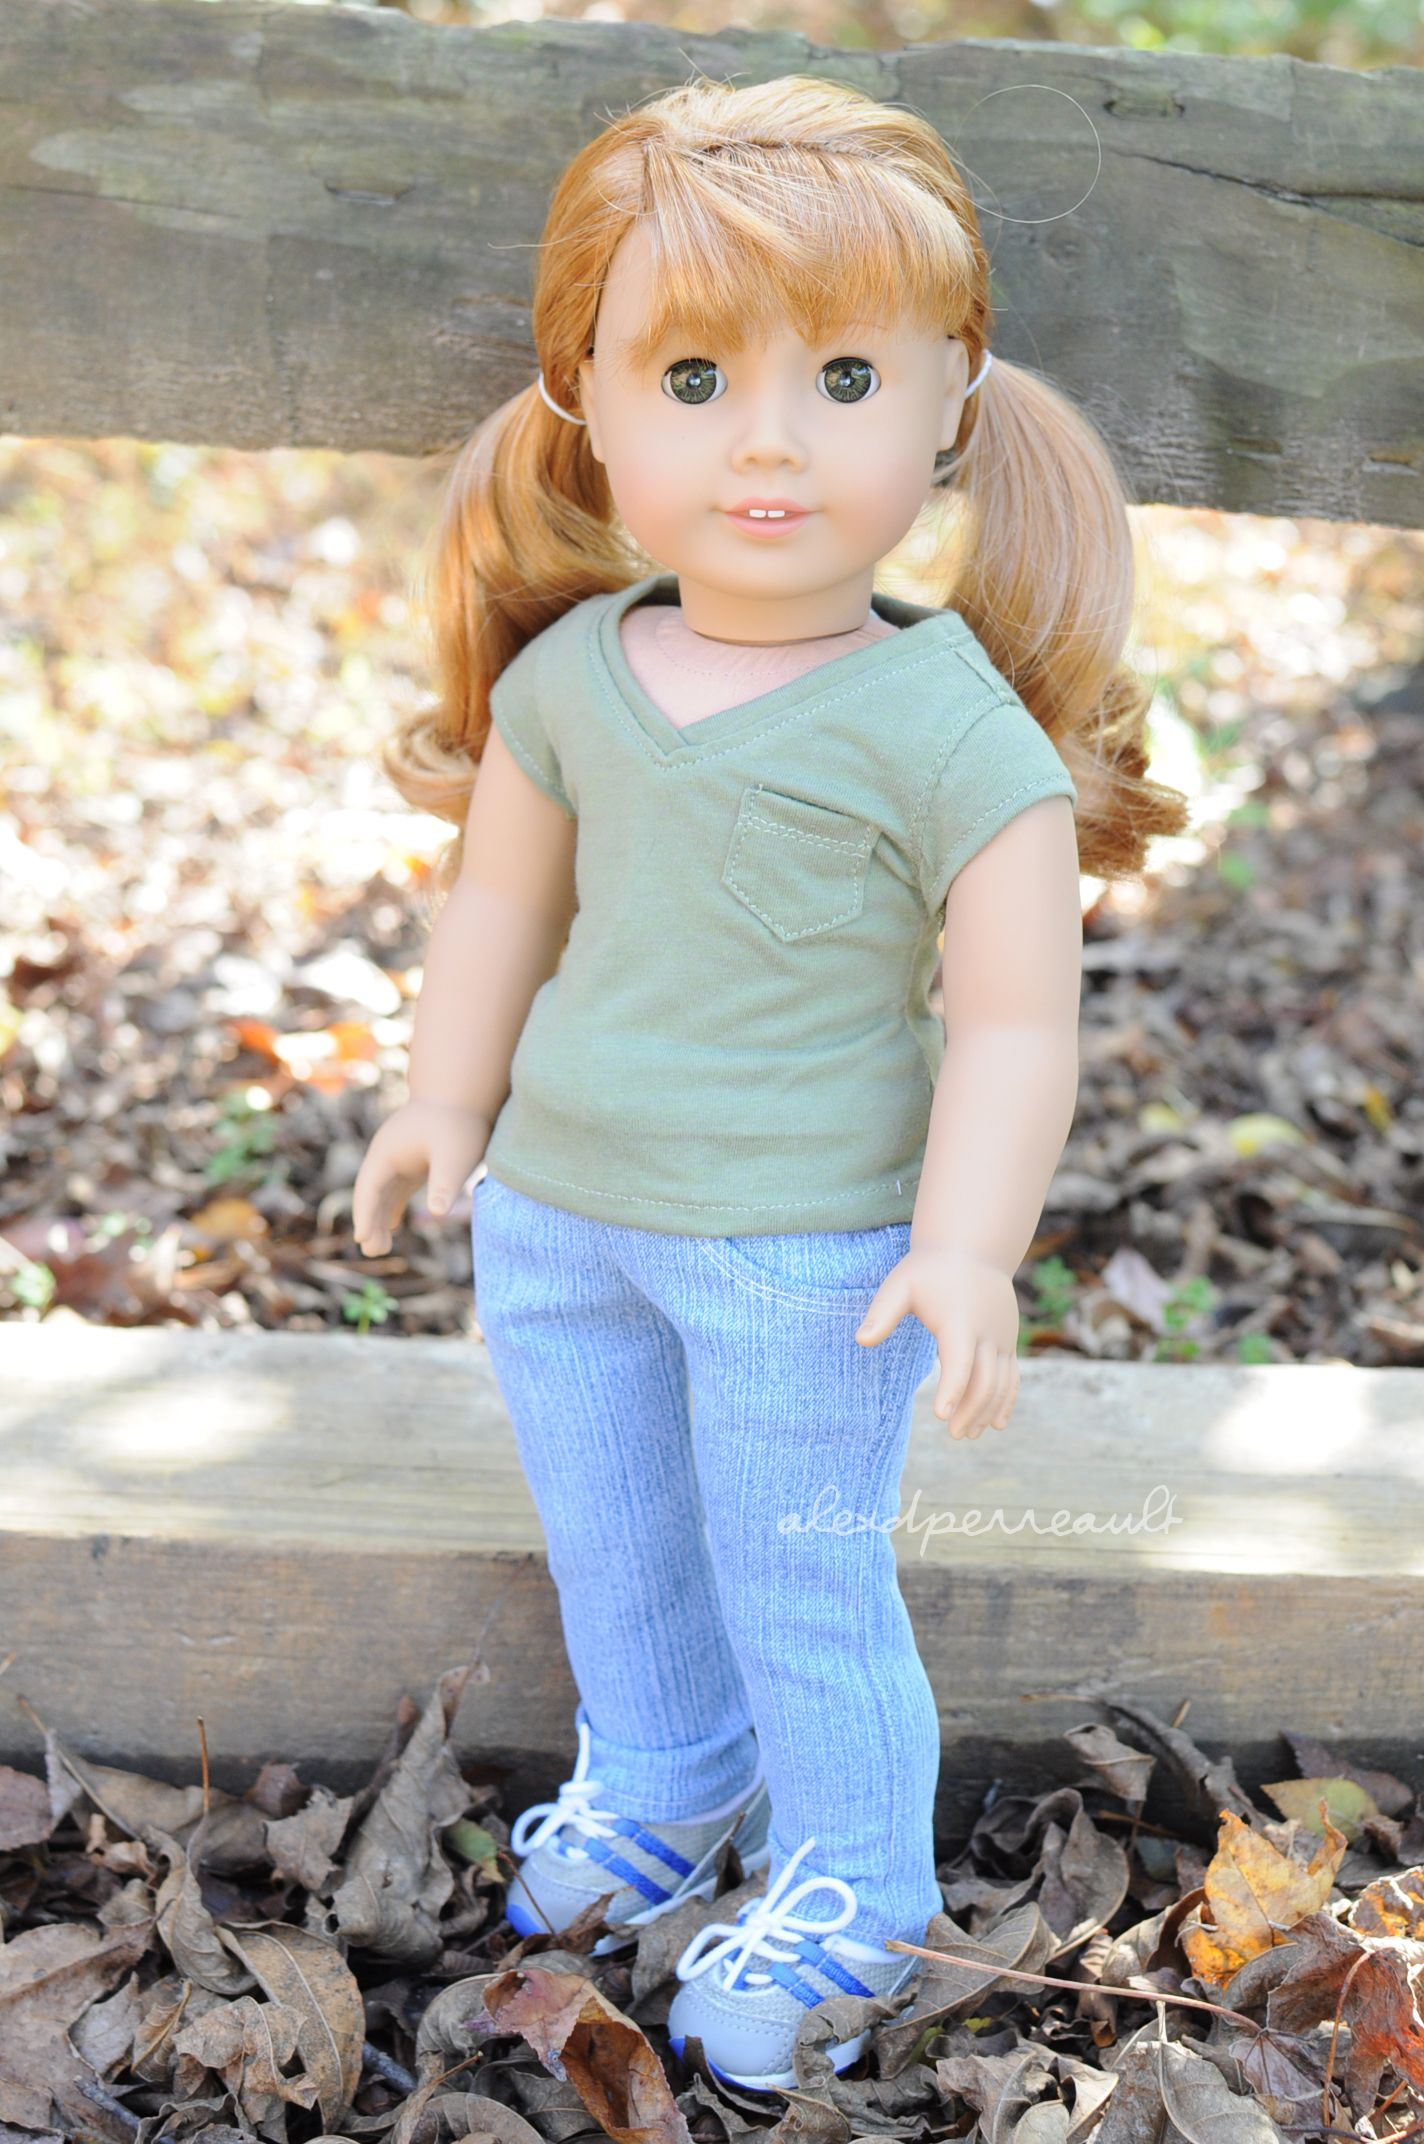 Tee by Sparrow and Wren, jeans by Maddie's Girls and sneakers are AG brand. American Girl